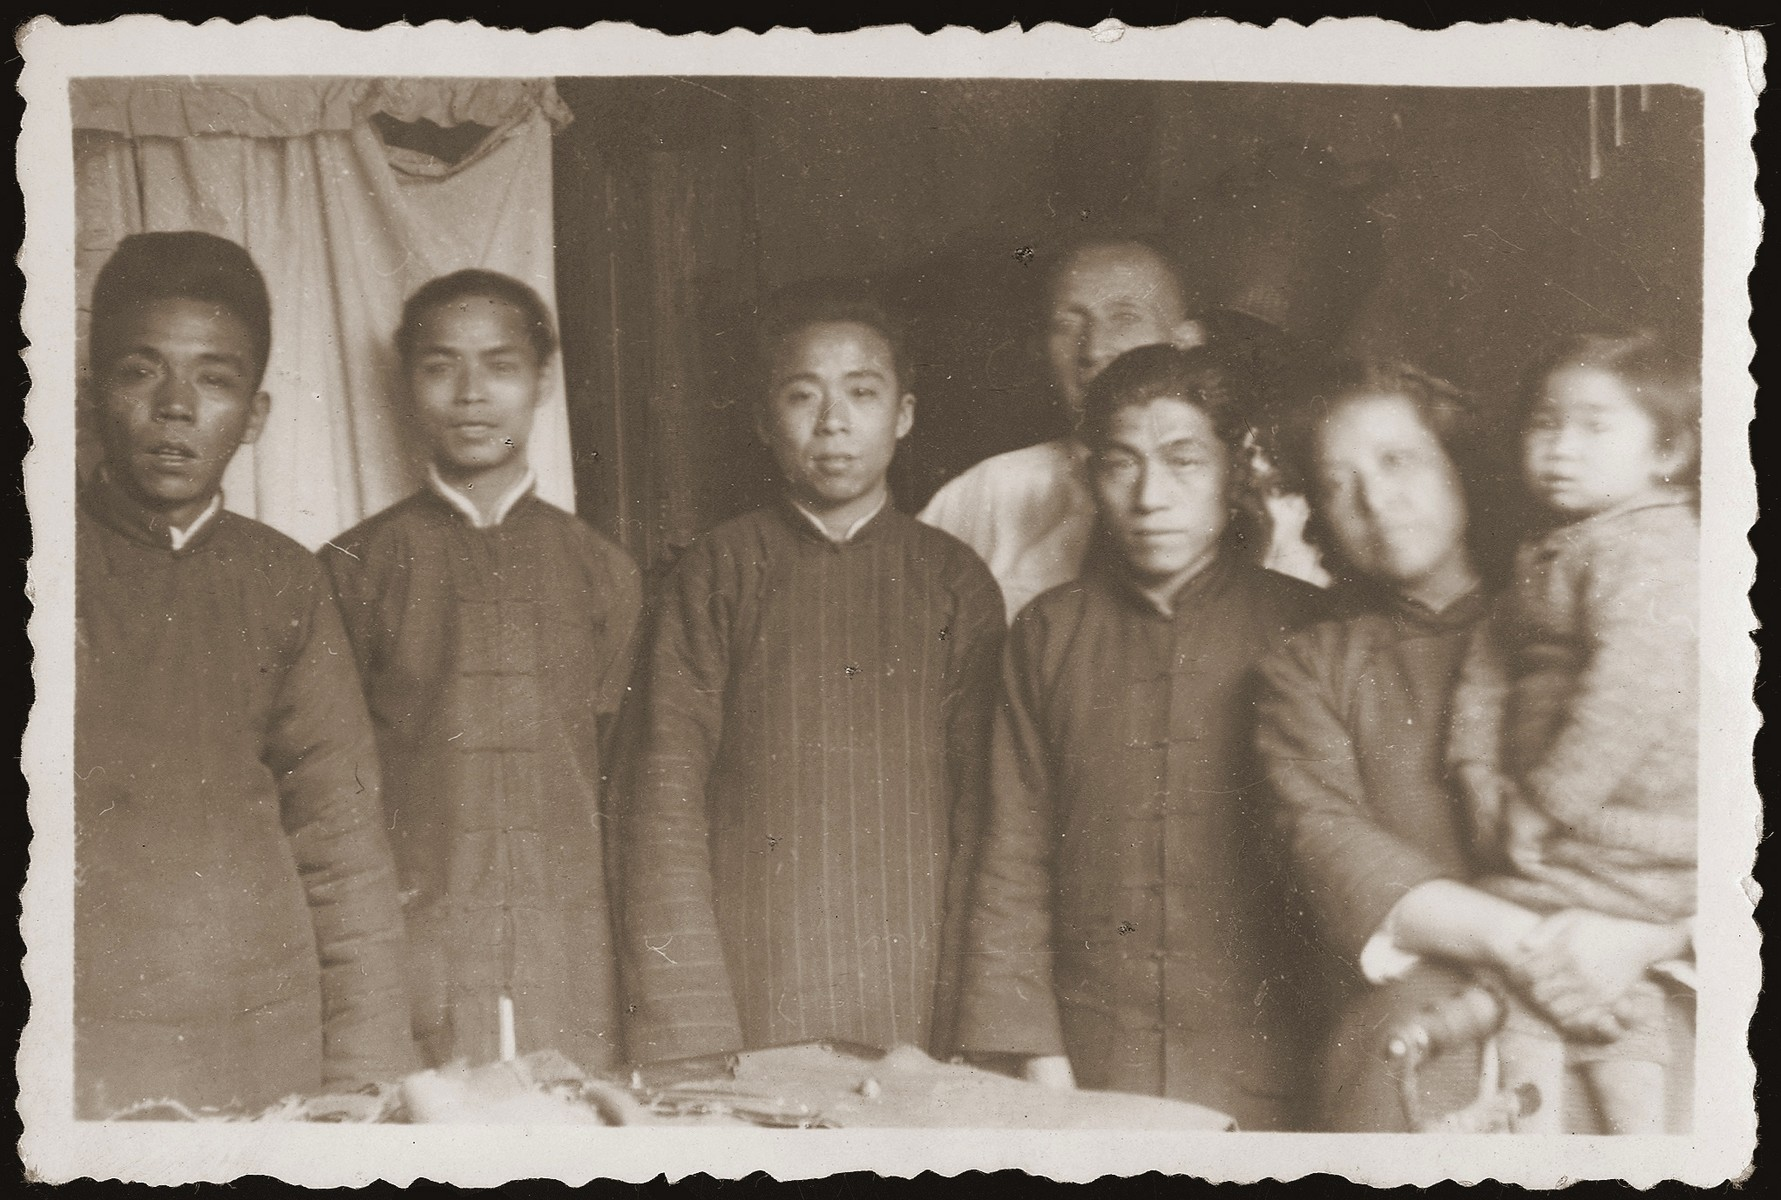 The family of a Chinese translator who worked with Walter Jacobsberg in Shanghai.  The Chinese civilian translated documents from Chinese to English, which Walter would then translate into German for the benefit of the German Jewish refugee community.